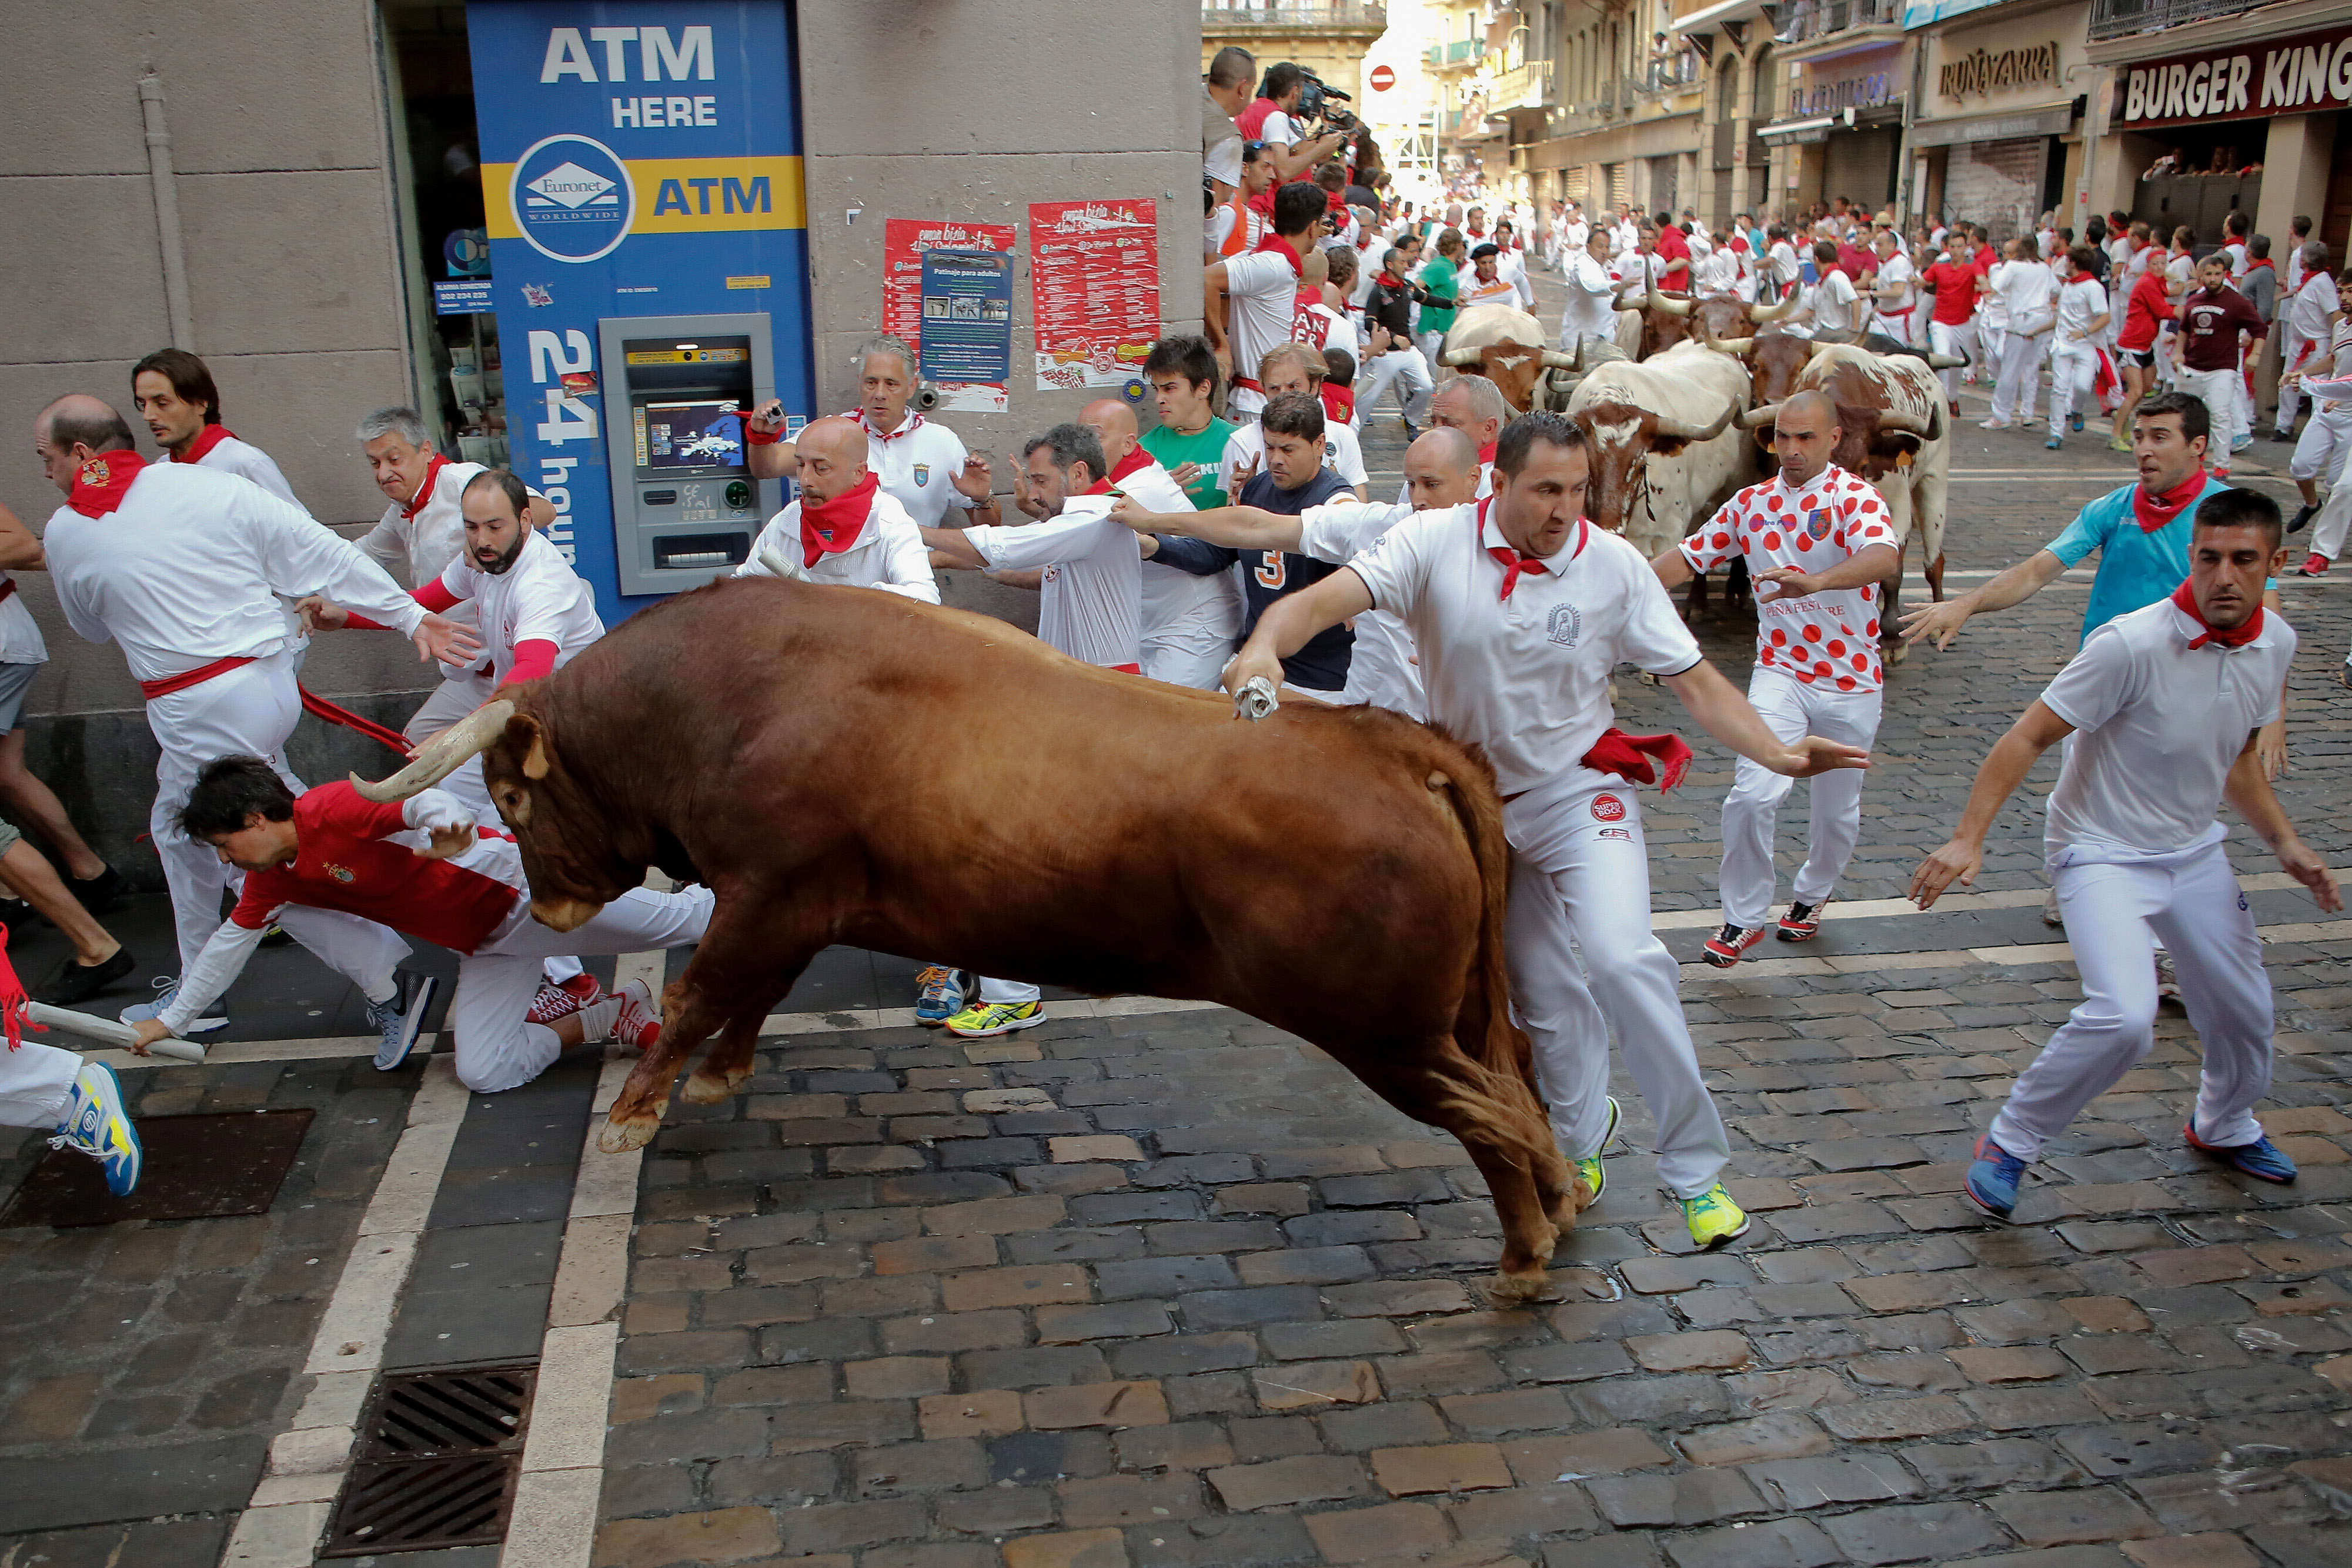 Video Shows Brutal Reality Of Bull Running, As Spain Sees Third Goring Death GettyImages 545480574